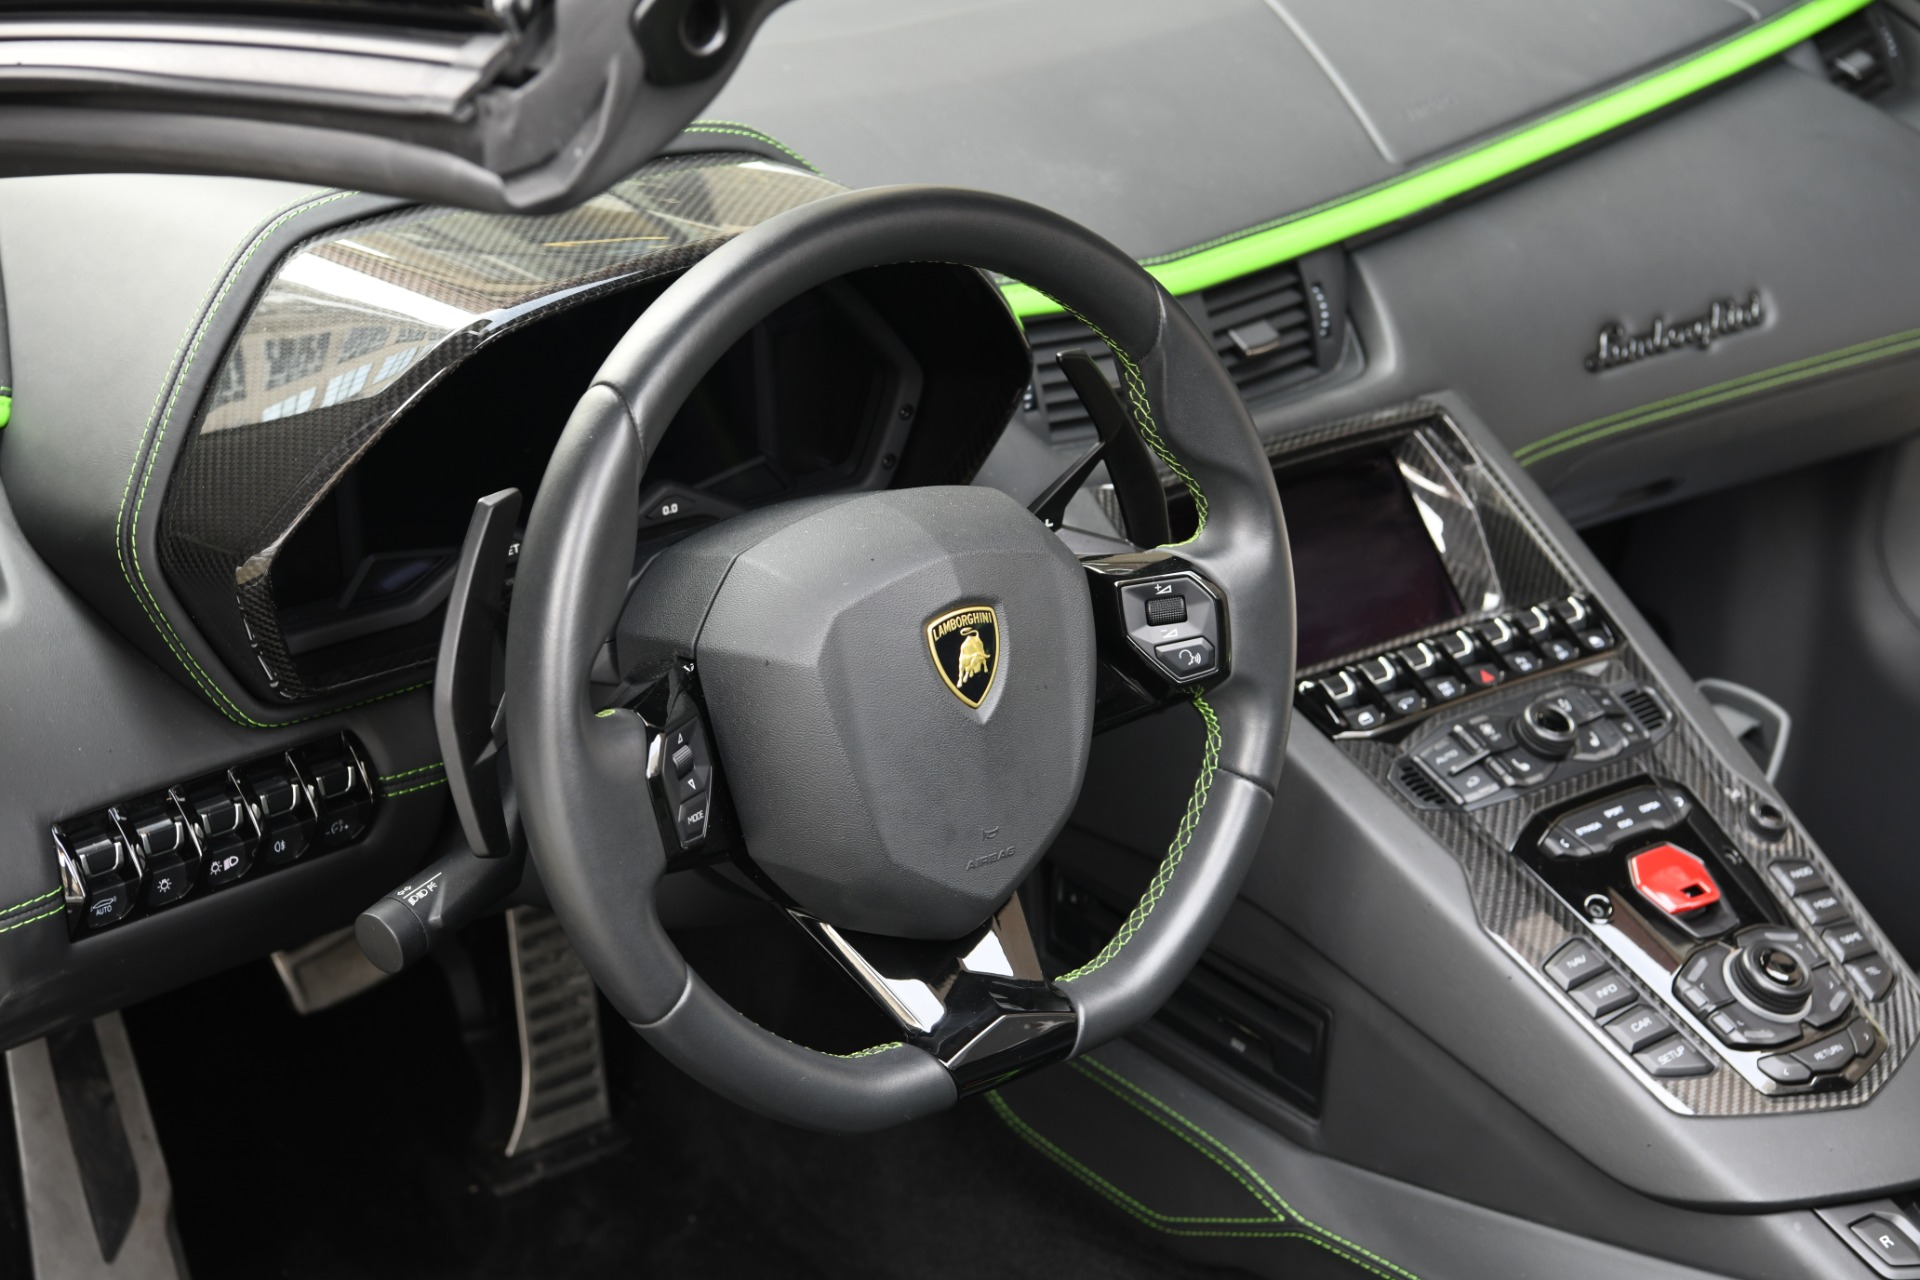 Used 2019 Lamborghini Aventador S Roadster LP 740-4 S | Chicago, IL